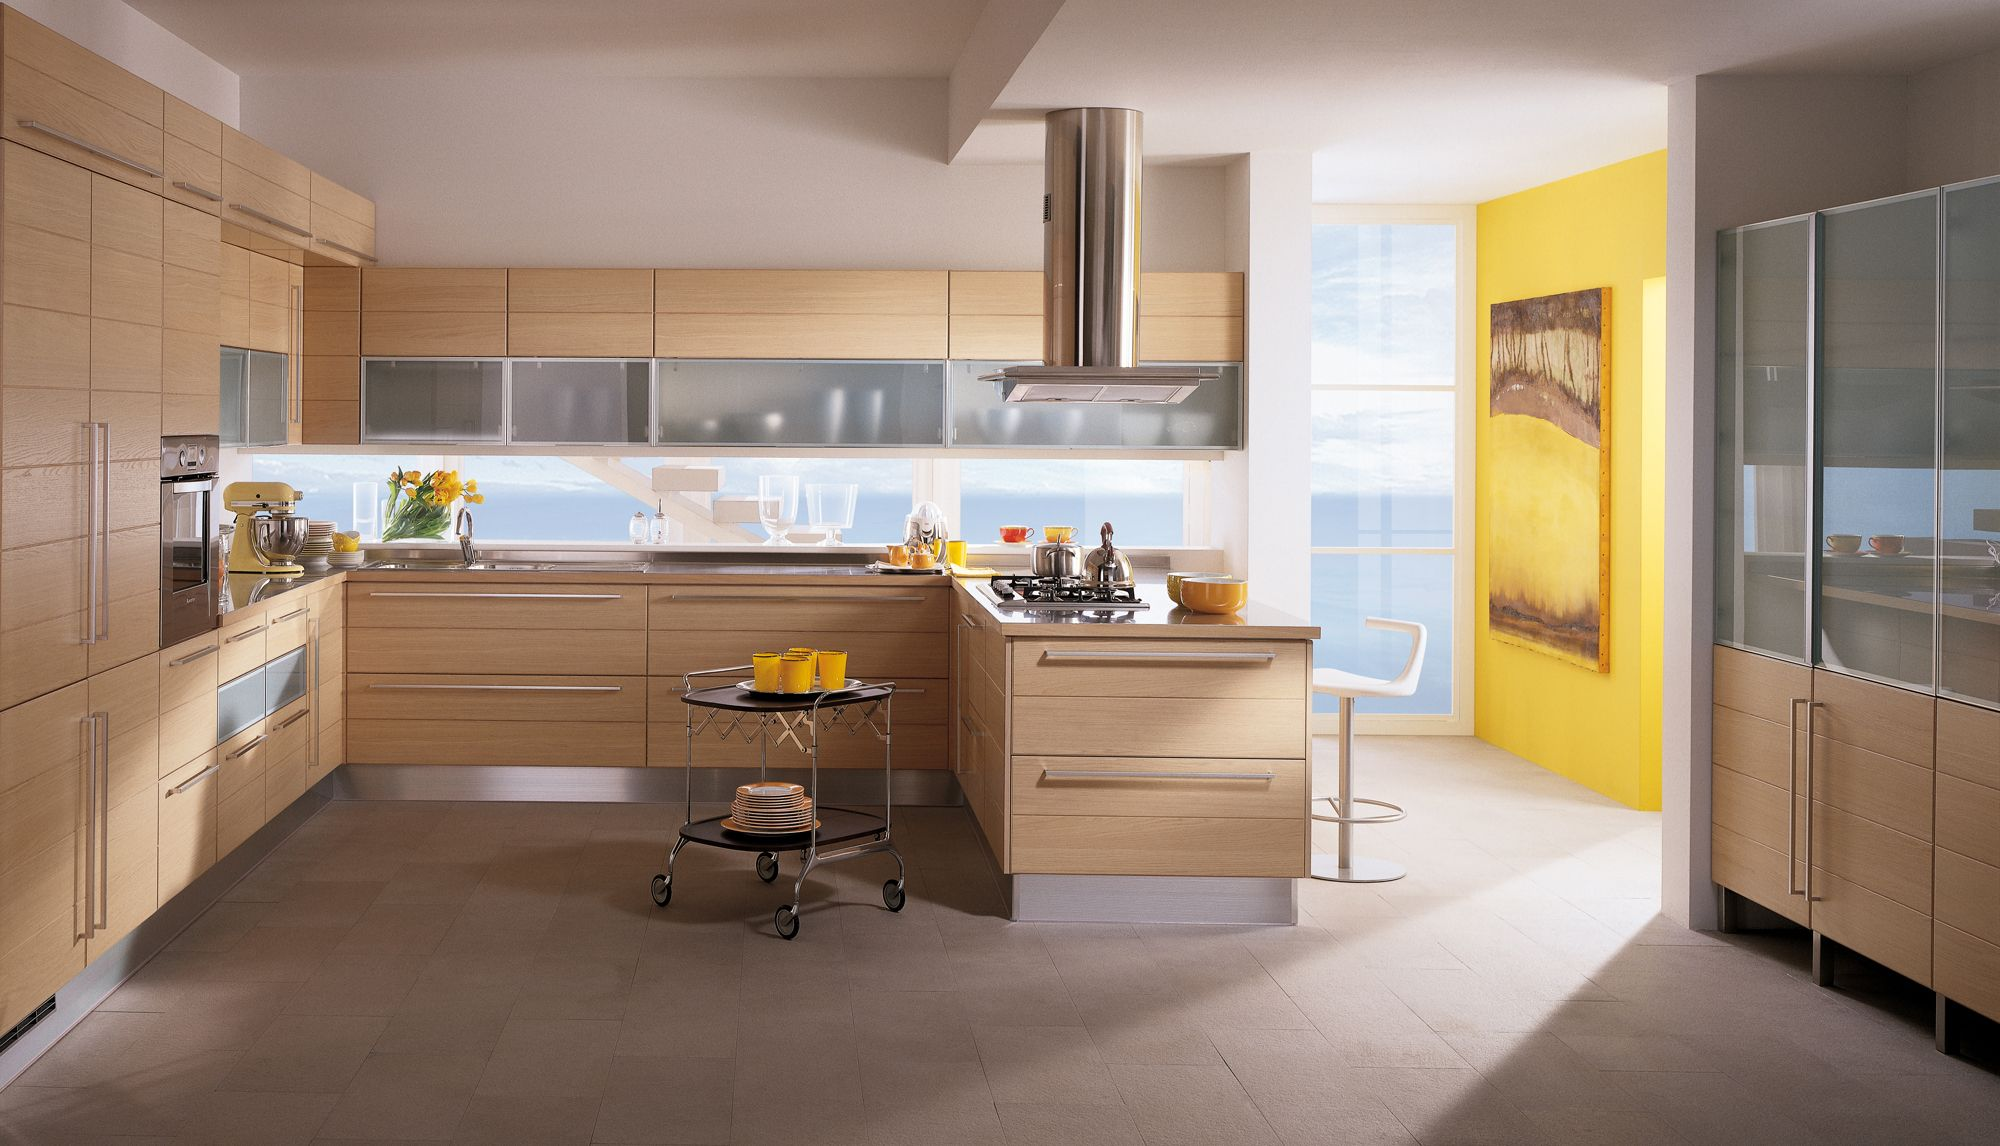 scavolini mood kitchen light scavolini contemporary kitchen. Scavolini Present A Colorful Collection Of Contemporary Italian Kitchens Using Amazing Colors And Patterns, With Great Designs. Mood Kitchen Light N